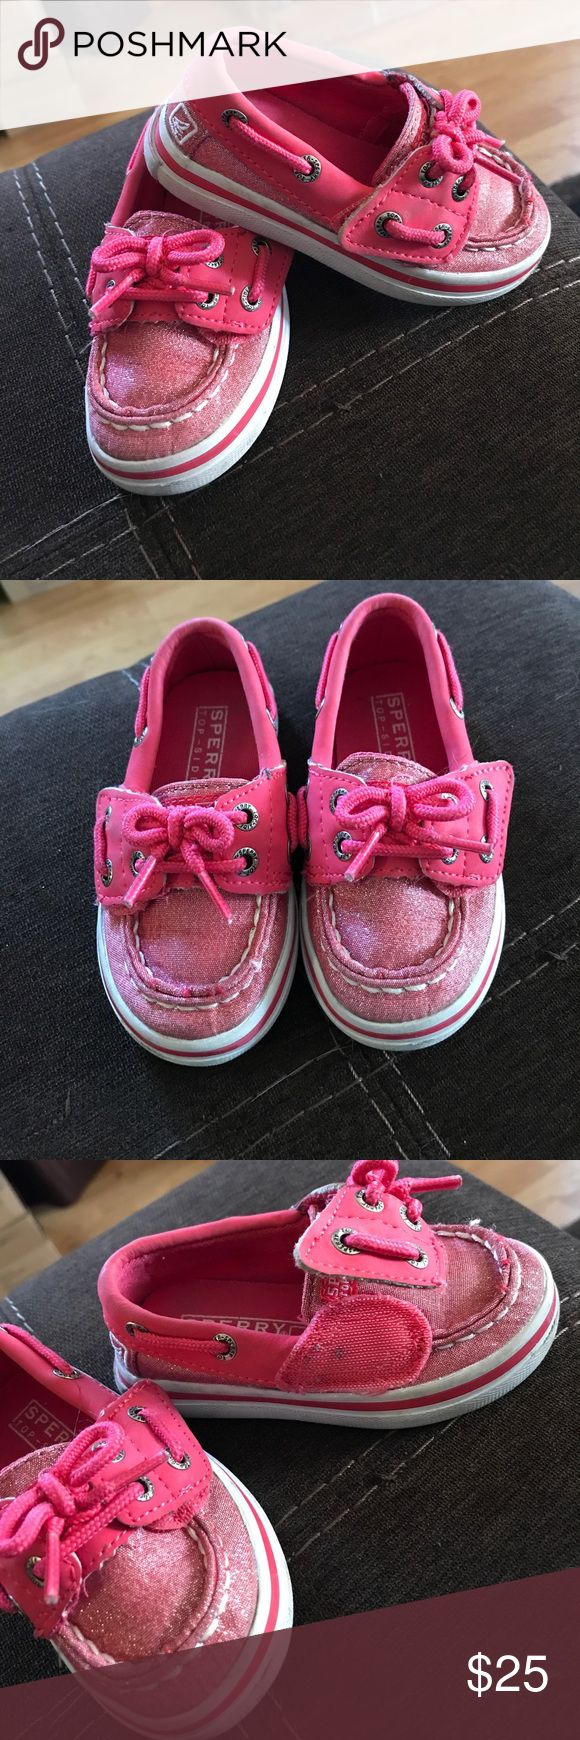 """Pink Sparkly Sperry's These are absolutely adorable! Sperry Top-Sliders """"Seabright Jr"""" for toddler girl, size 5. Maybe only warn 2 times total, great condition! They Velcro so they are really easy to put on, my daughter had no trouble doing it by herself! Sperry Top-Sider Shoes Flats & Loafers"""